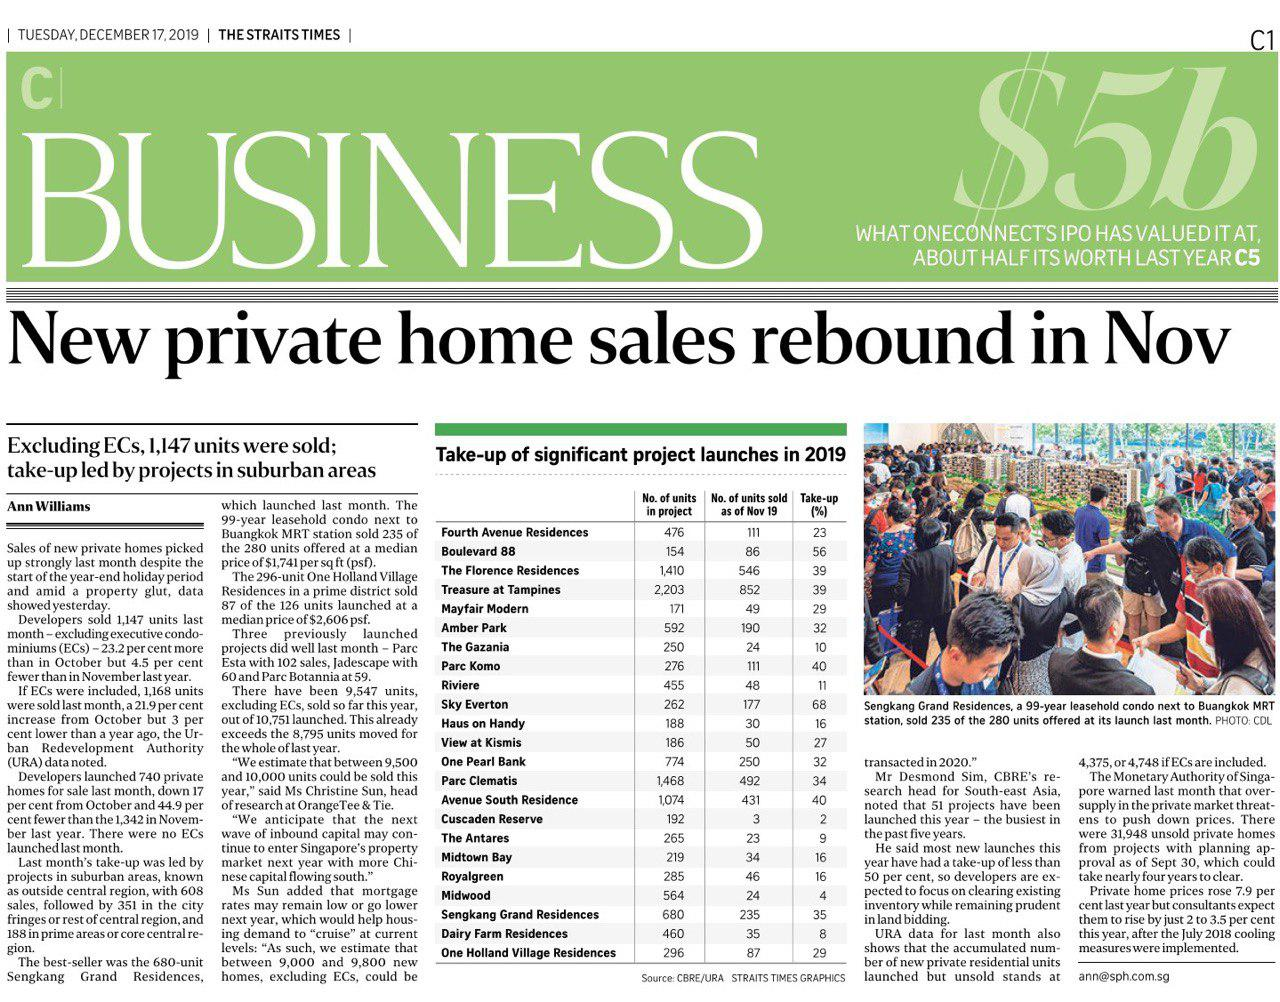 hyll-on-holland-New private home sales rebound in Nov